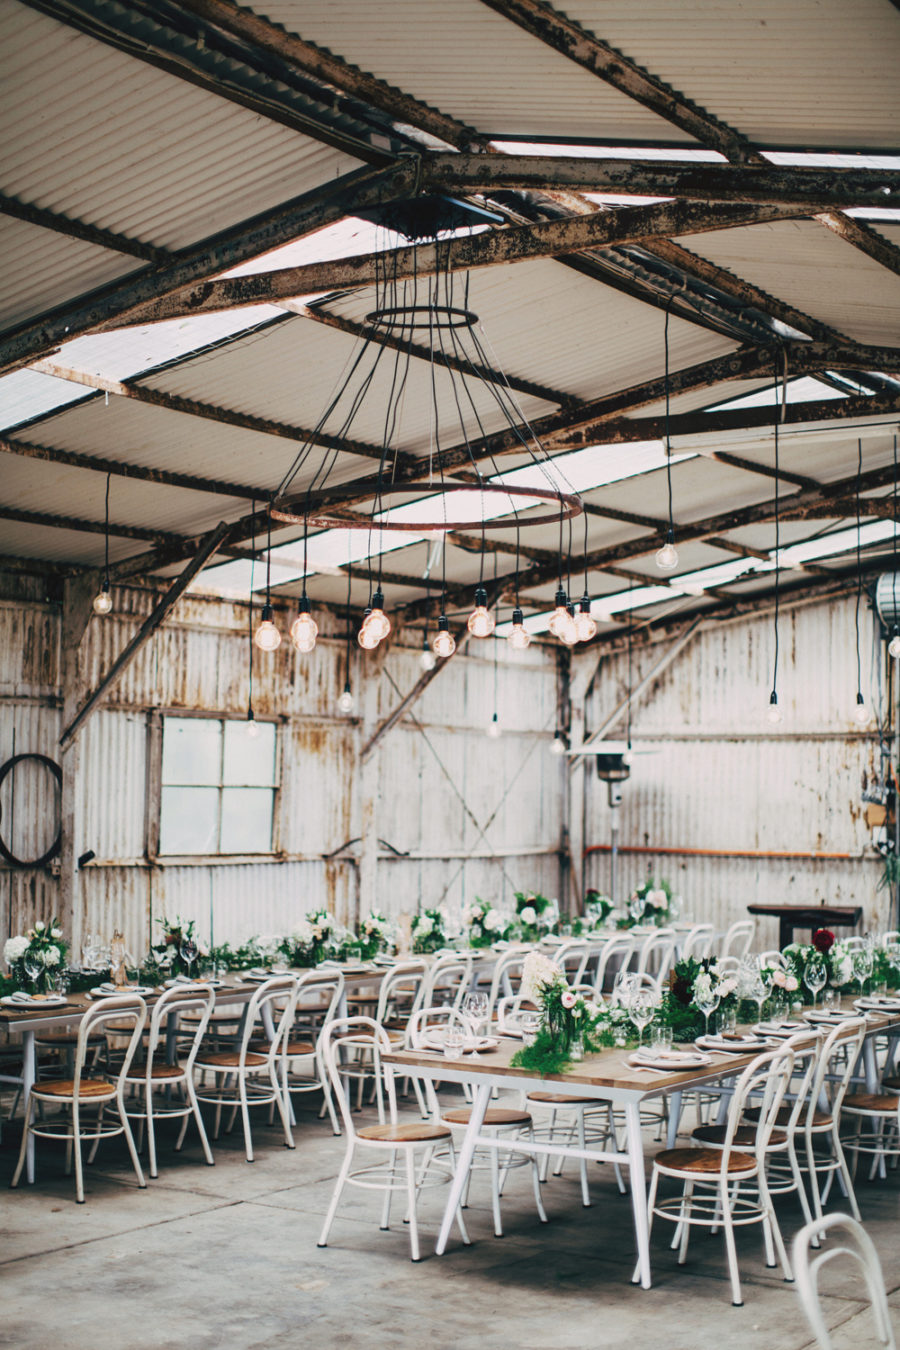 Boho Pins: Top 10 Pins of the Week - Industrial and Warehouse Weddings